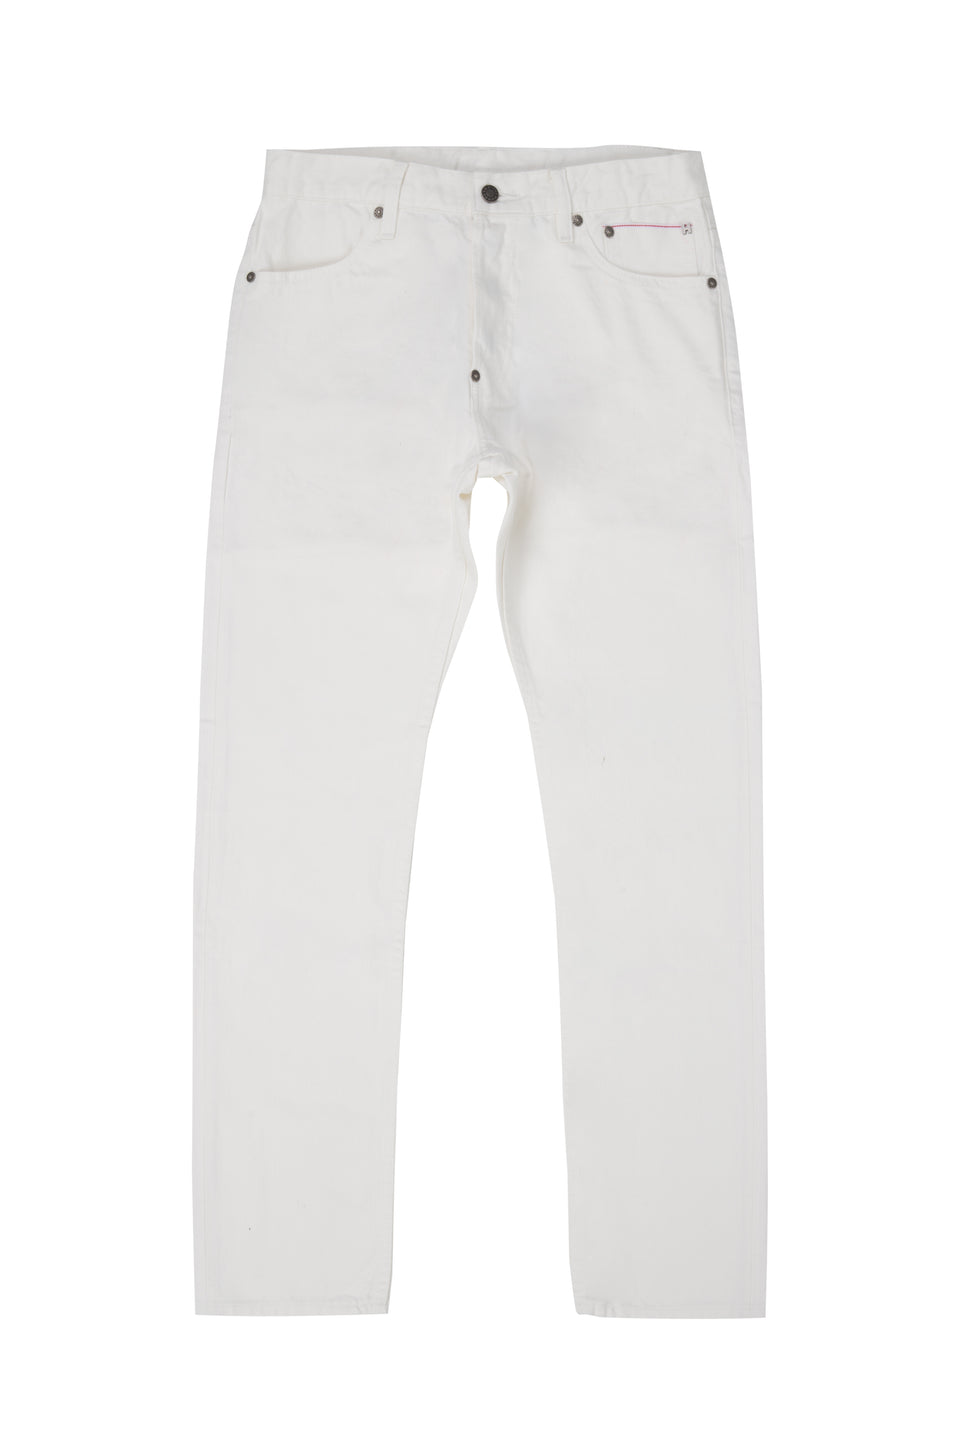 White Out Denim (Skinny)